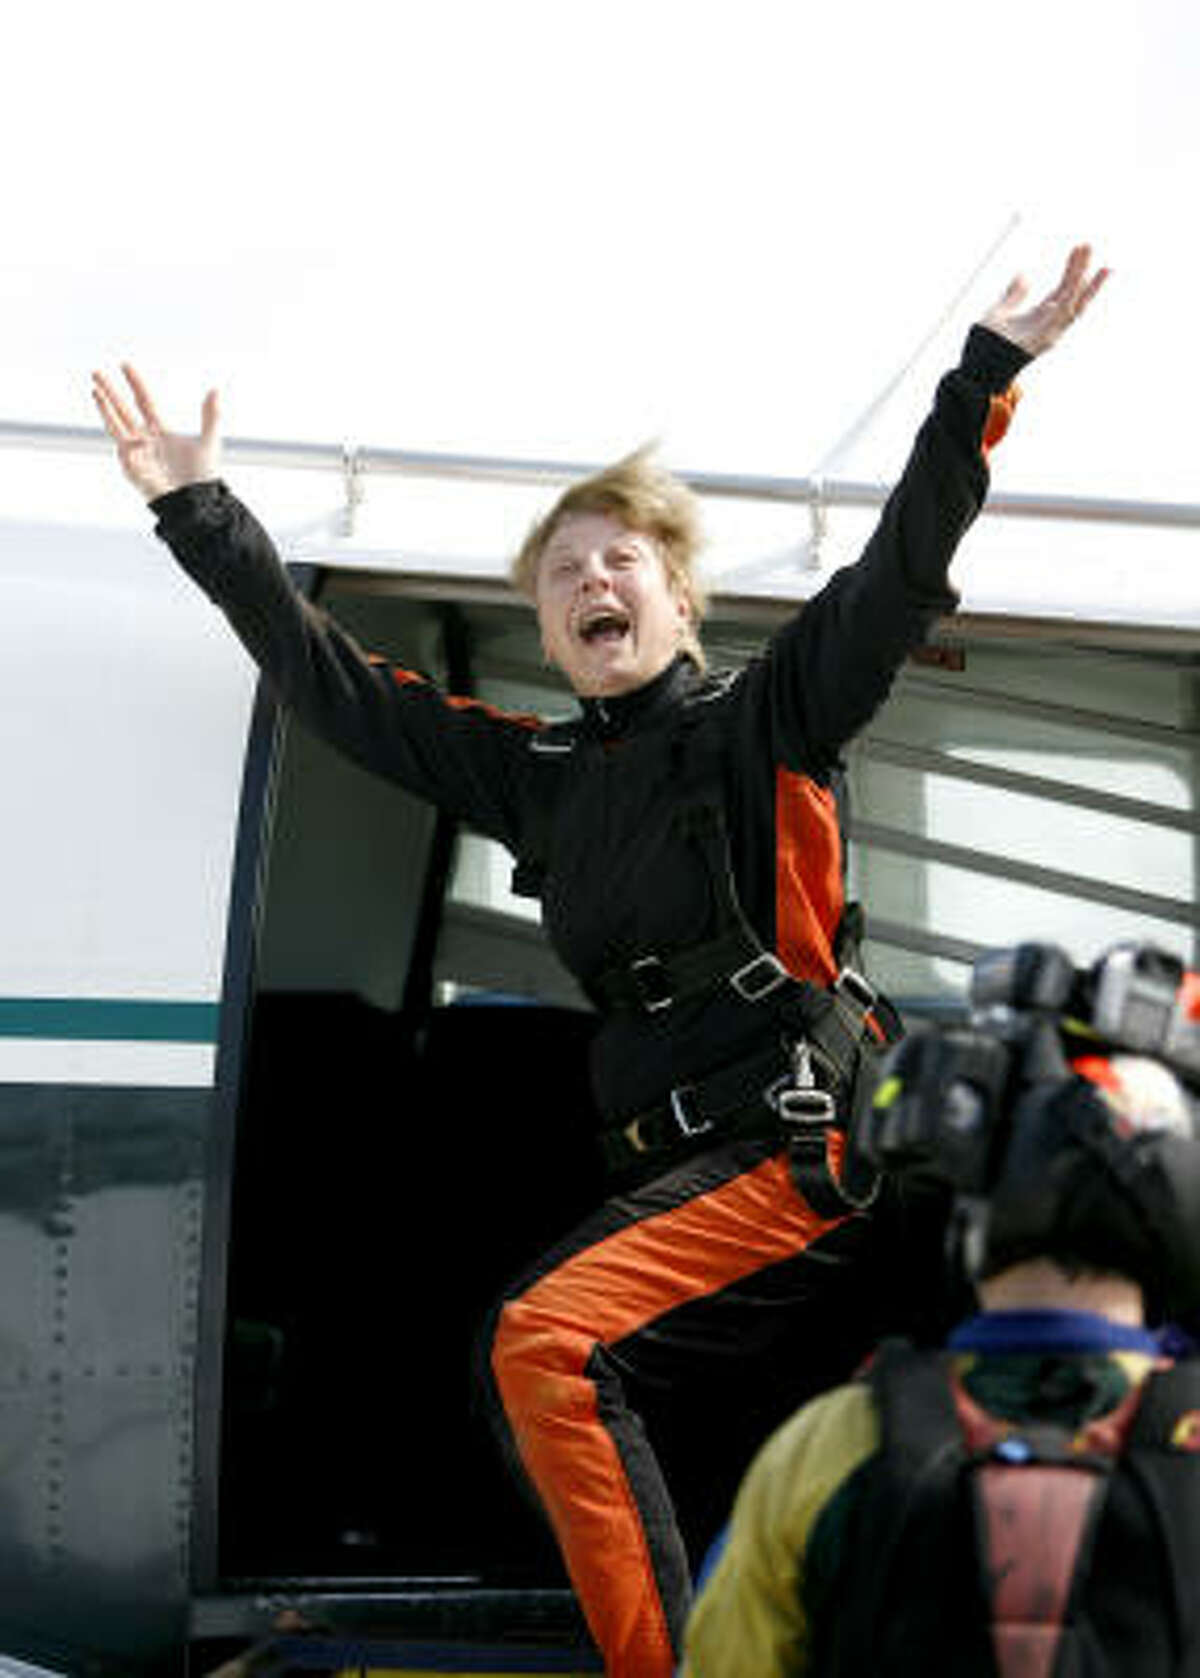 Sister Jane Meyer, 71, blows a kiss to all of her students, teachers and supporters as she boards an airplane to skydive.